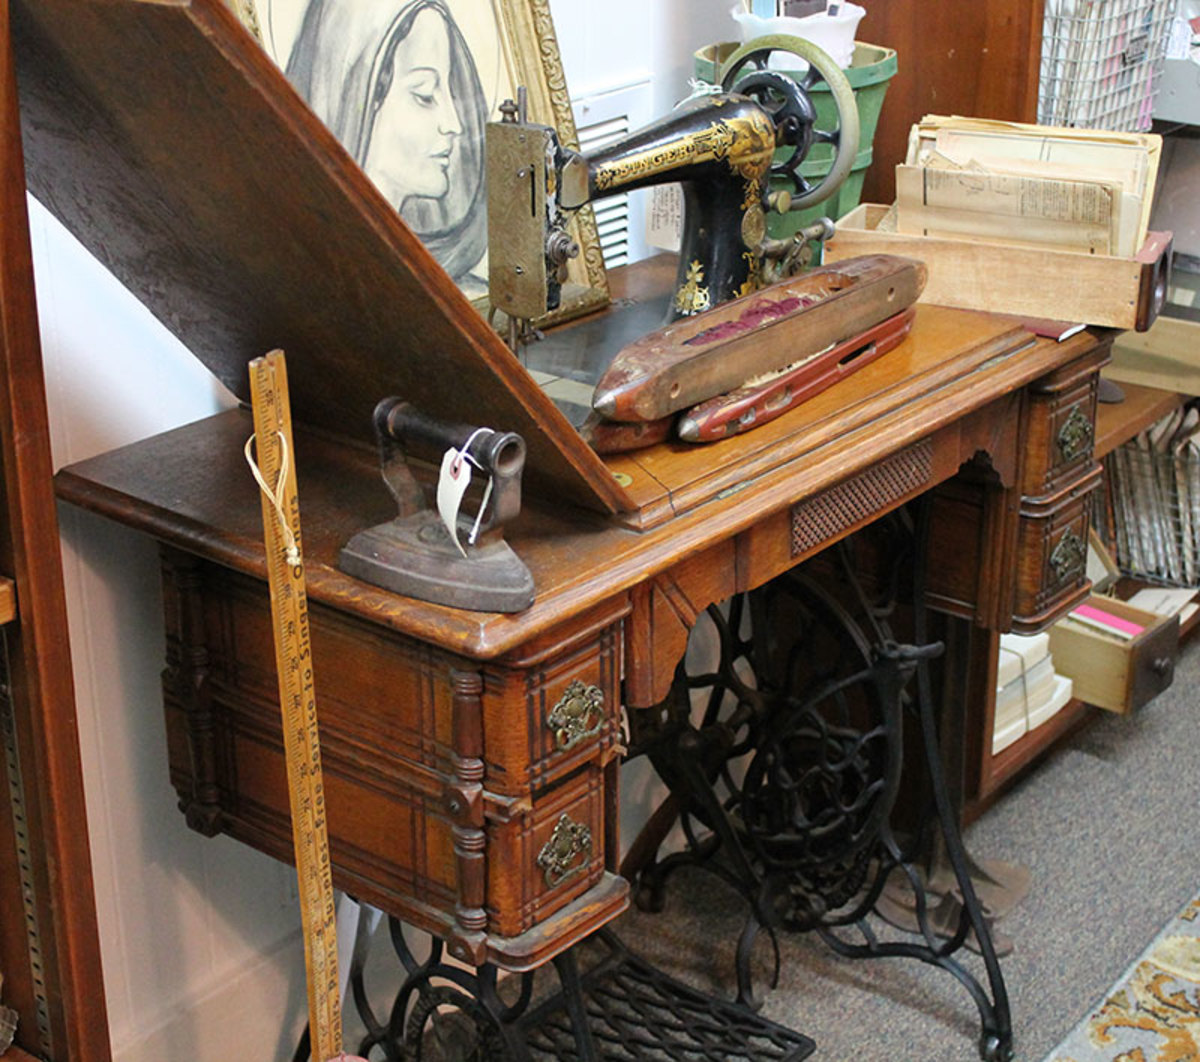 A Singer treadle with a fancy cabinet from the early 1900s